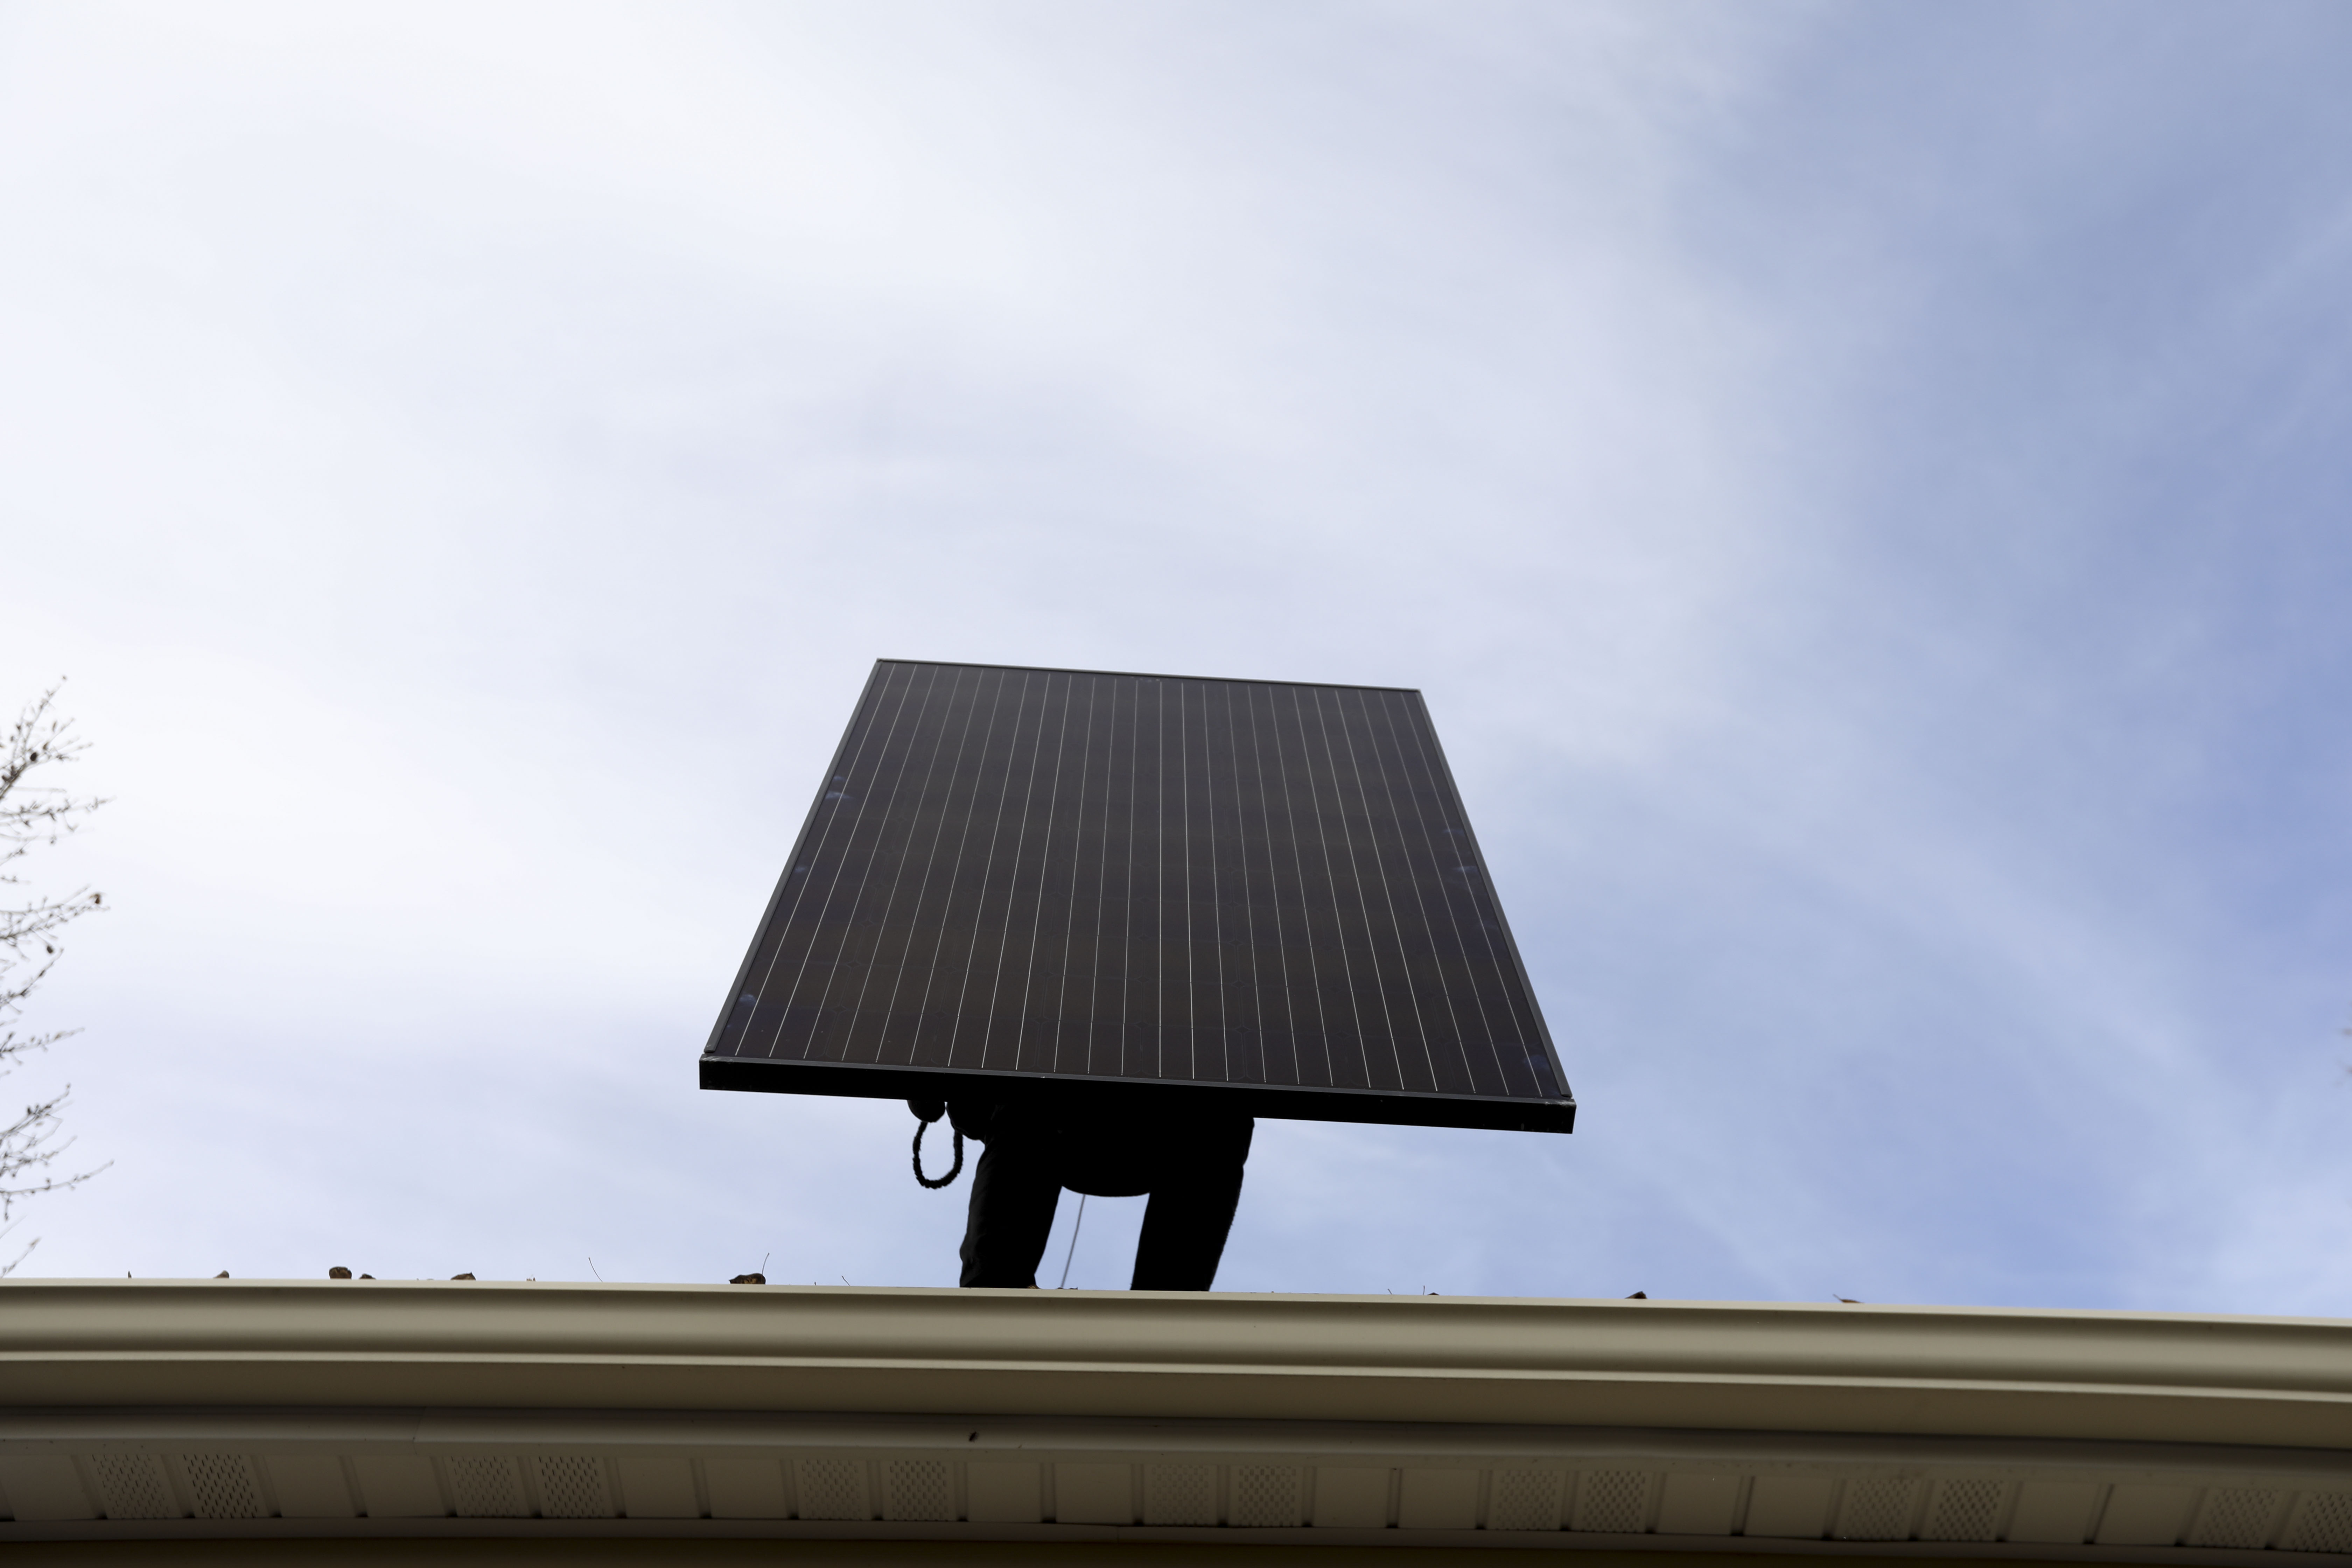 Dom Ontiveros, of Auric Energy, lifts a solar panel onto the roof of the 1,000th home that utilized the Empower SLC Solar program in Salt Lake City on Thursday, Nov. 14, 2019. Empower SLC Solar, a community-led program in Salt Lake County, helps residents overcome the logistical and financial hurdles of going solar.